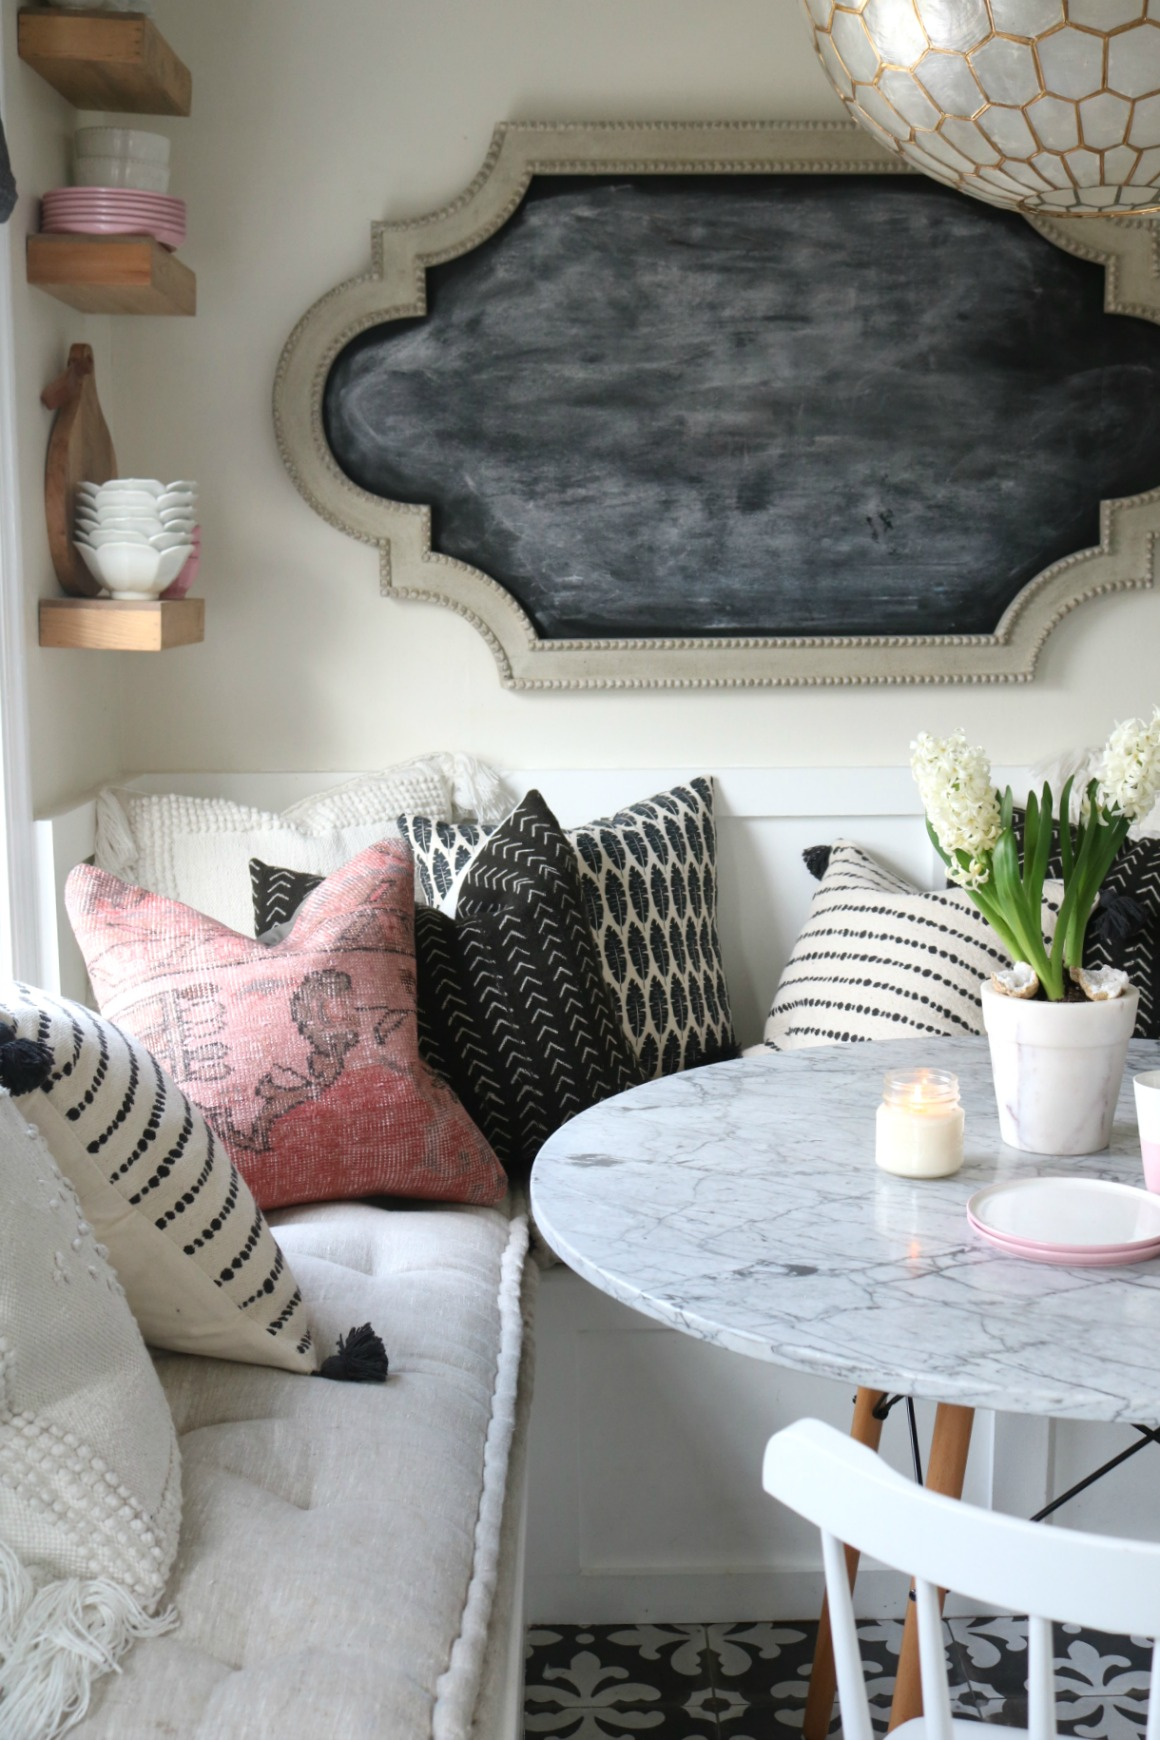 IKEA Favorite Finds- You need on your List!